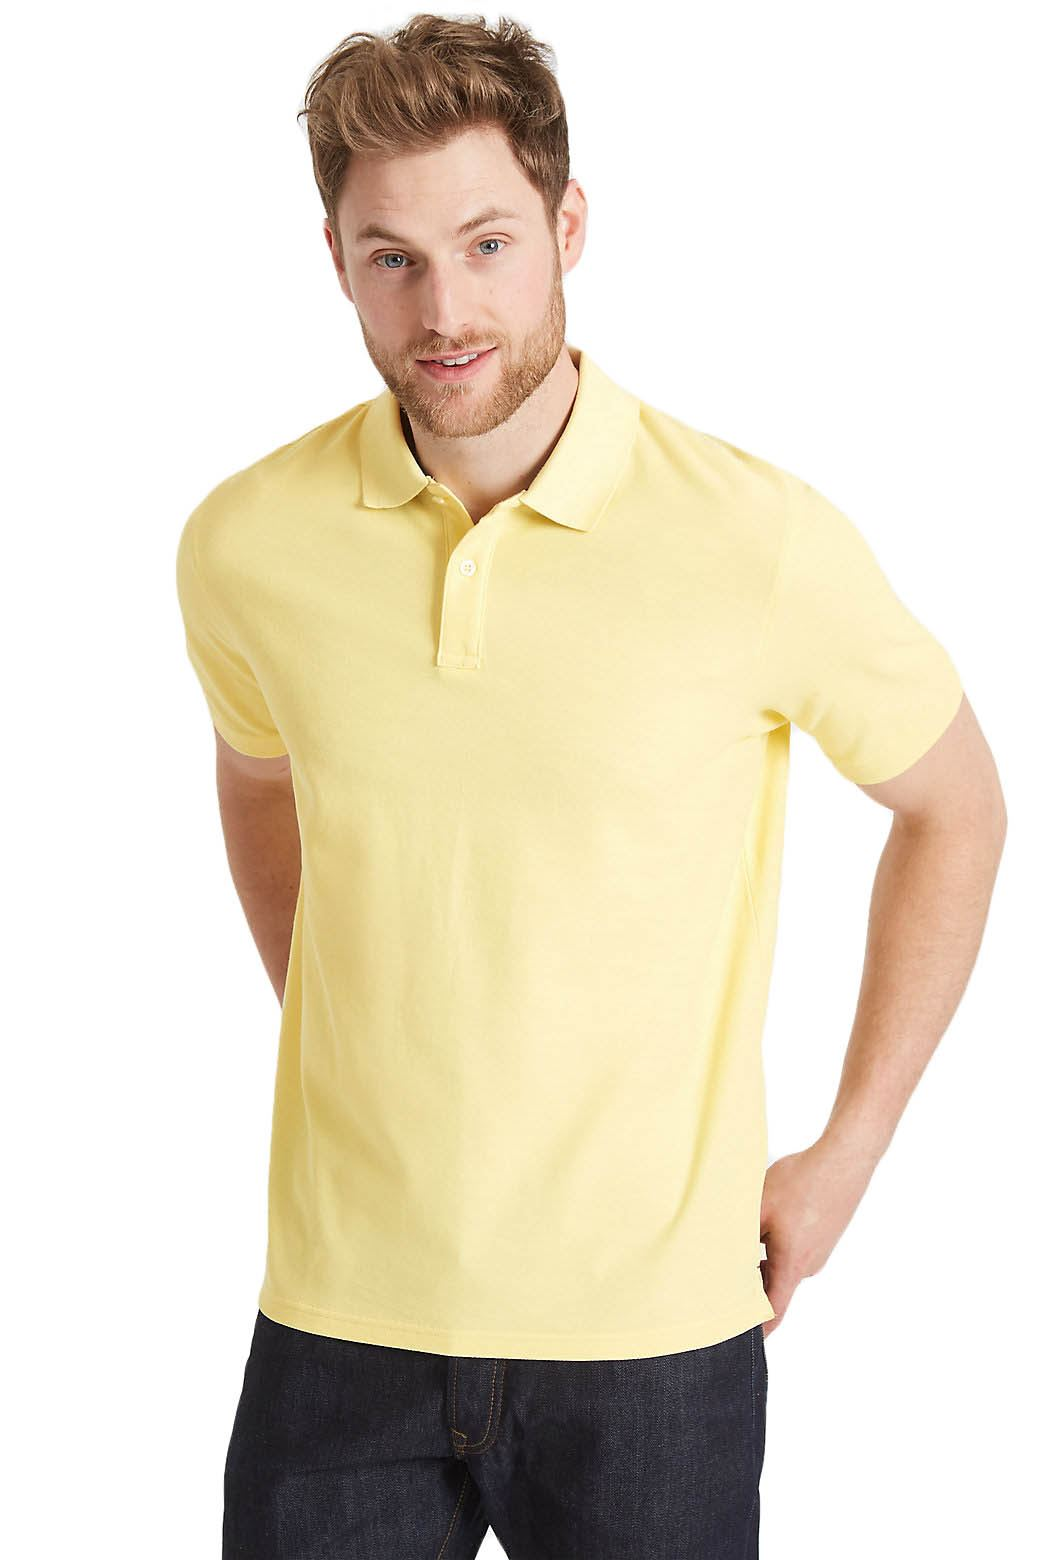 Ex-Marks-and-Spencer-Mens-Cotton-Pique-Polo-Shirt-NEW-Sizes-S-3XL thumbnail 33